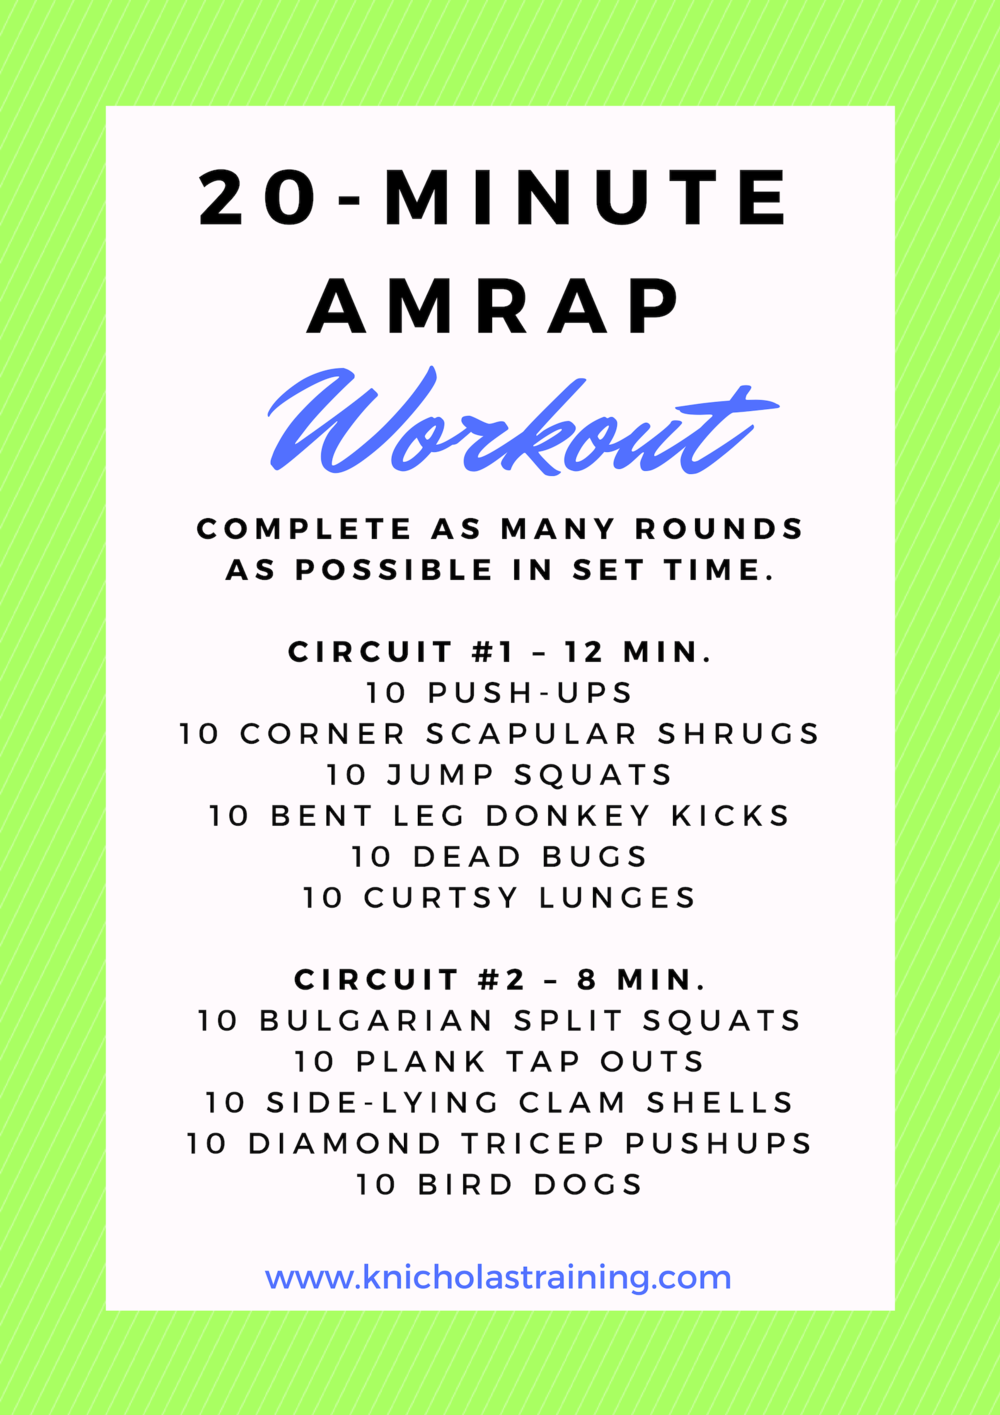 20 Min. AMRAP Workout